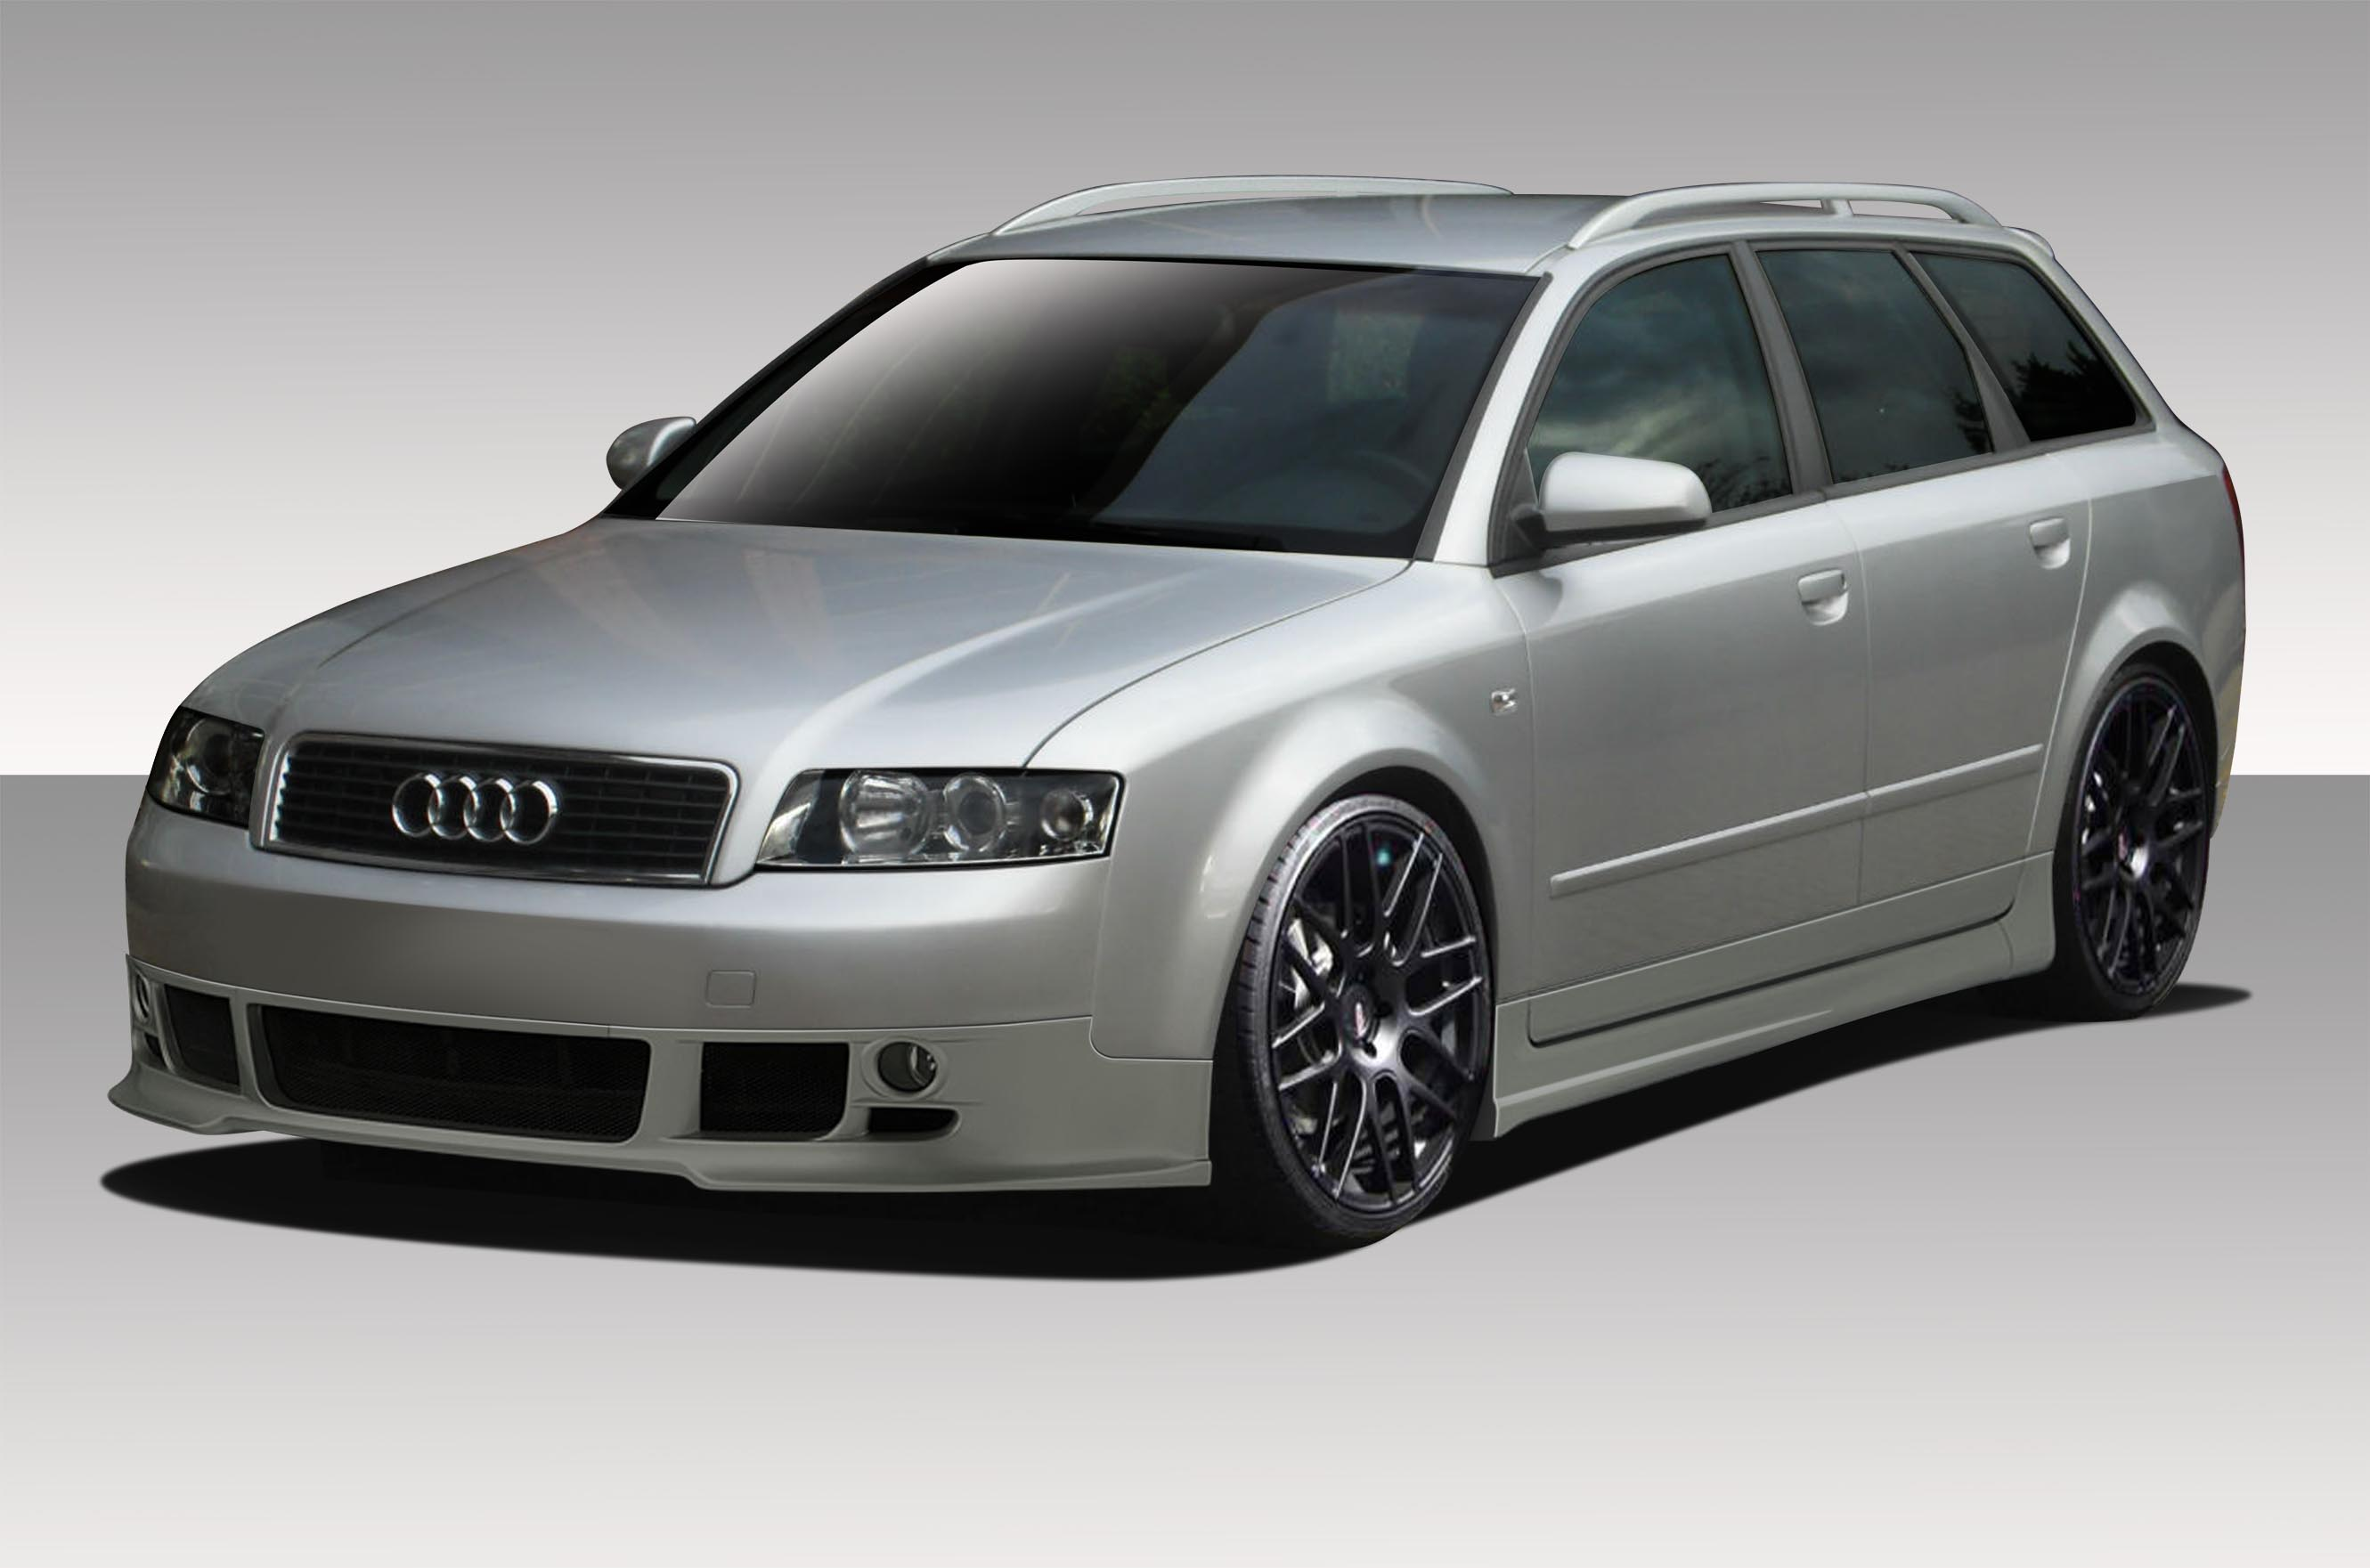 extreme dimensions 2002 2005 audi a4 wagon duraflex type a body kit 4 piece wholesale car parts. Black Bedroom Furniture Sets. Home Design Ideas